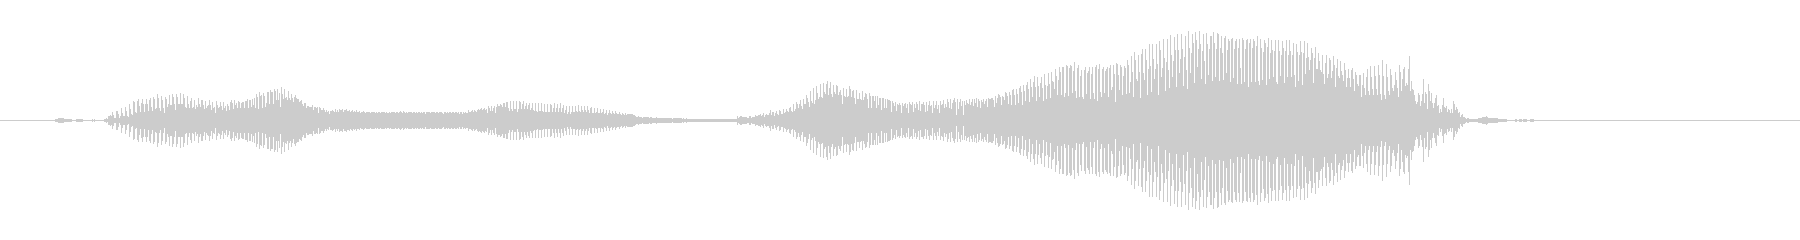 Hello. The voice of a 5-year-old boy.'s unreproduced waveform